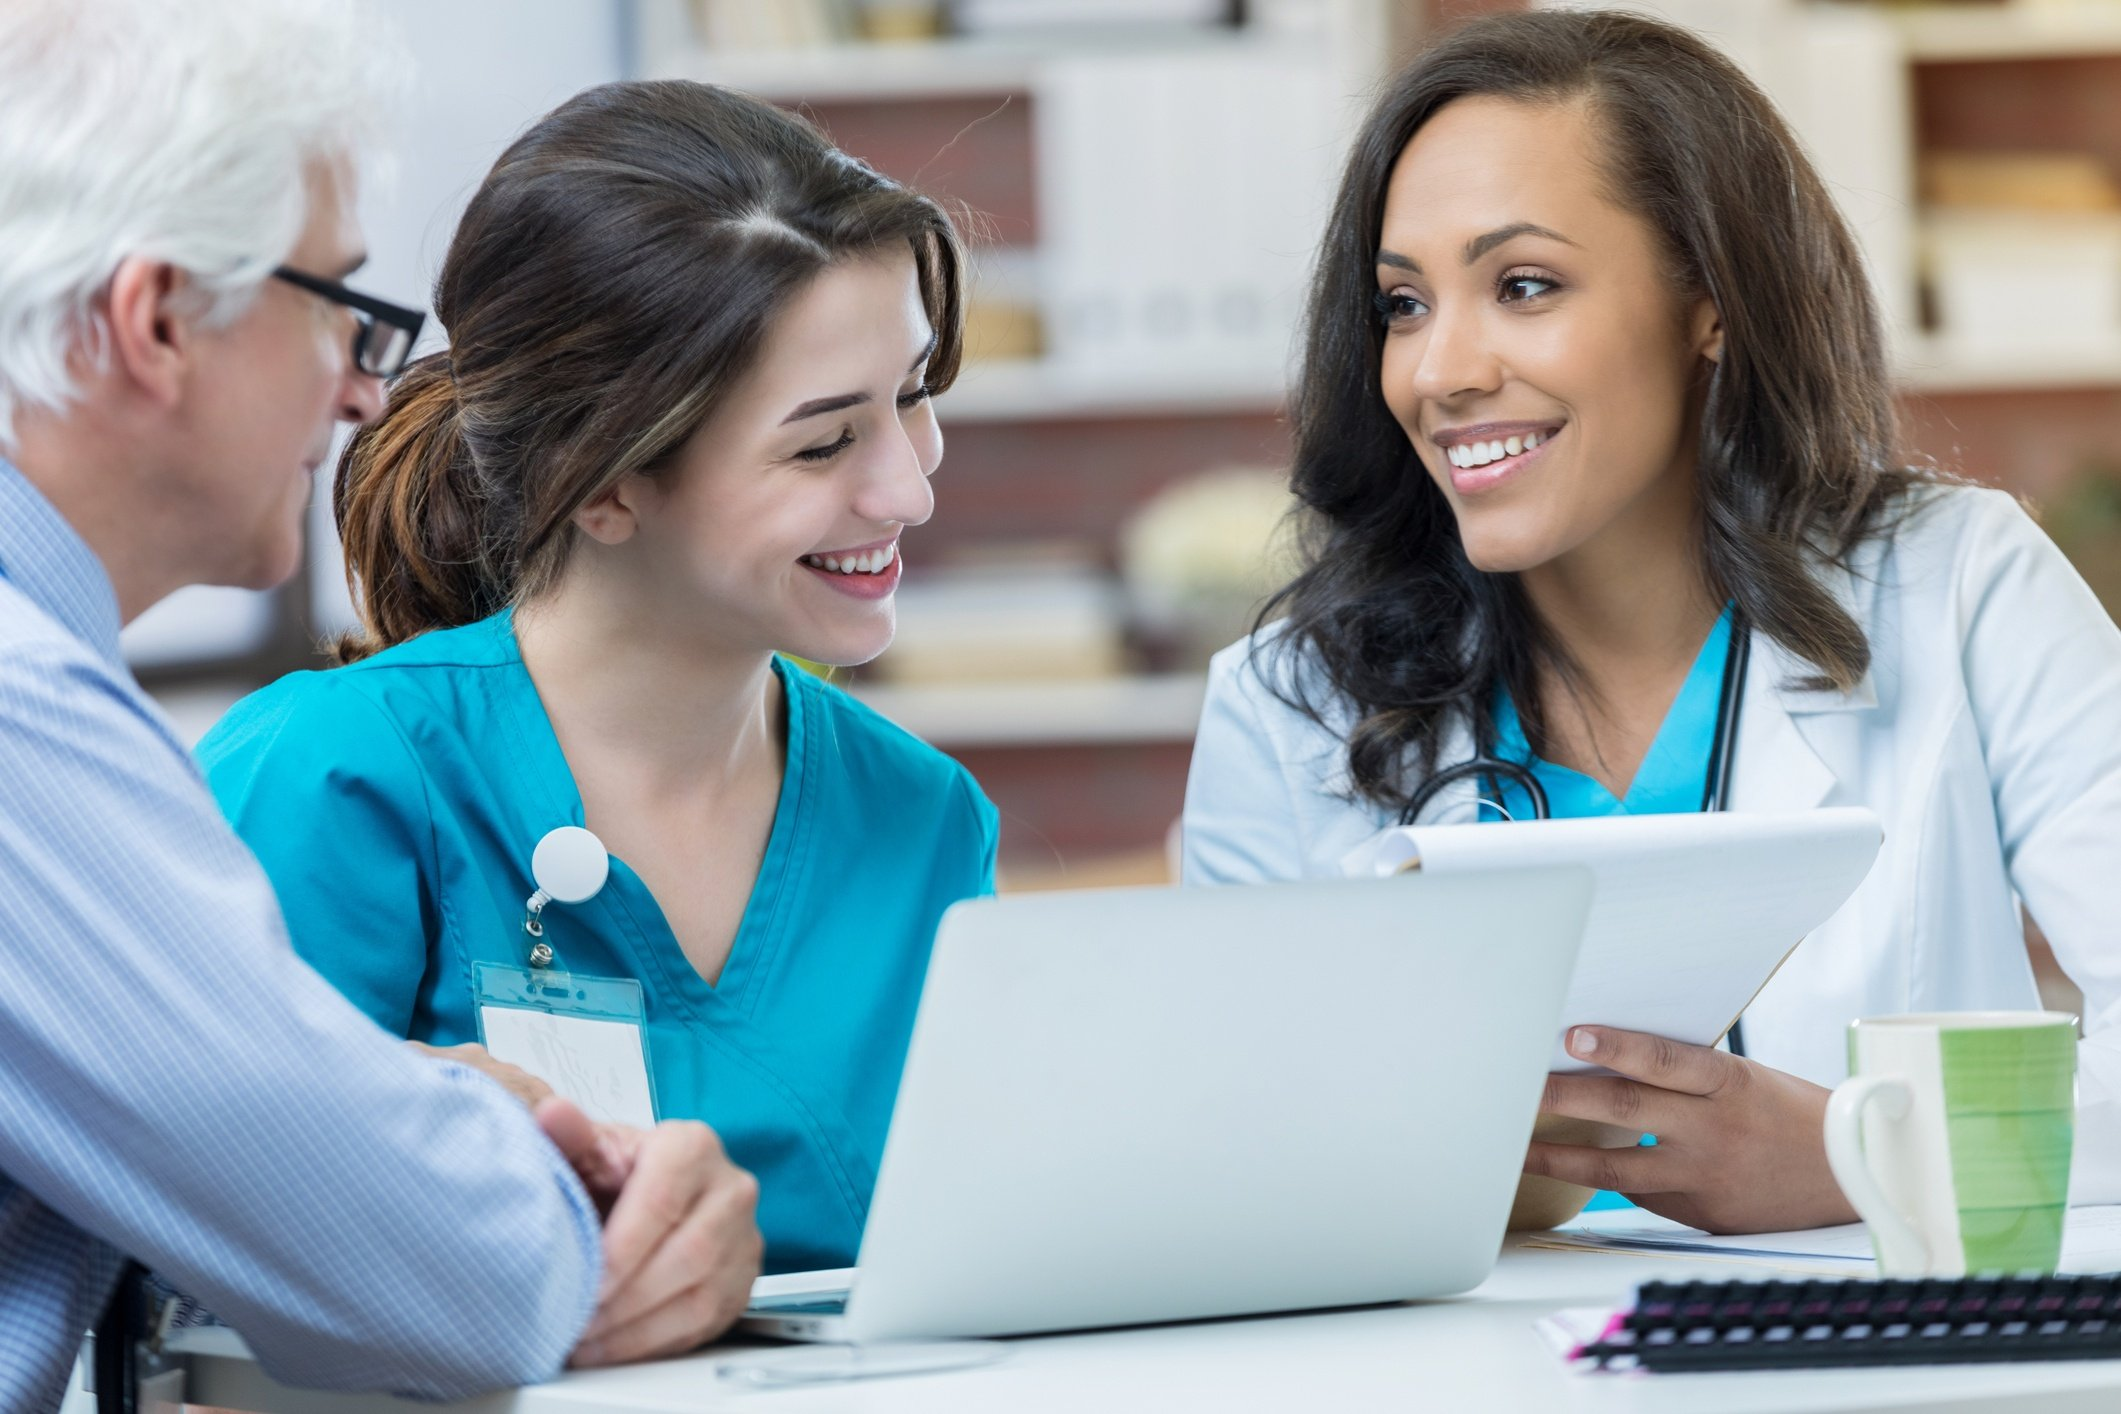 7 Financial Questions You Should Ask Yourself When Considering a Medical Degree